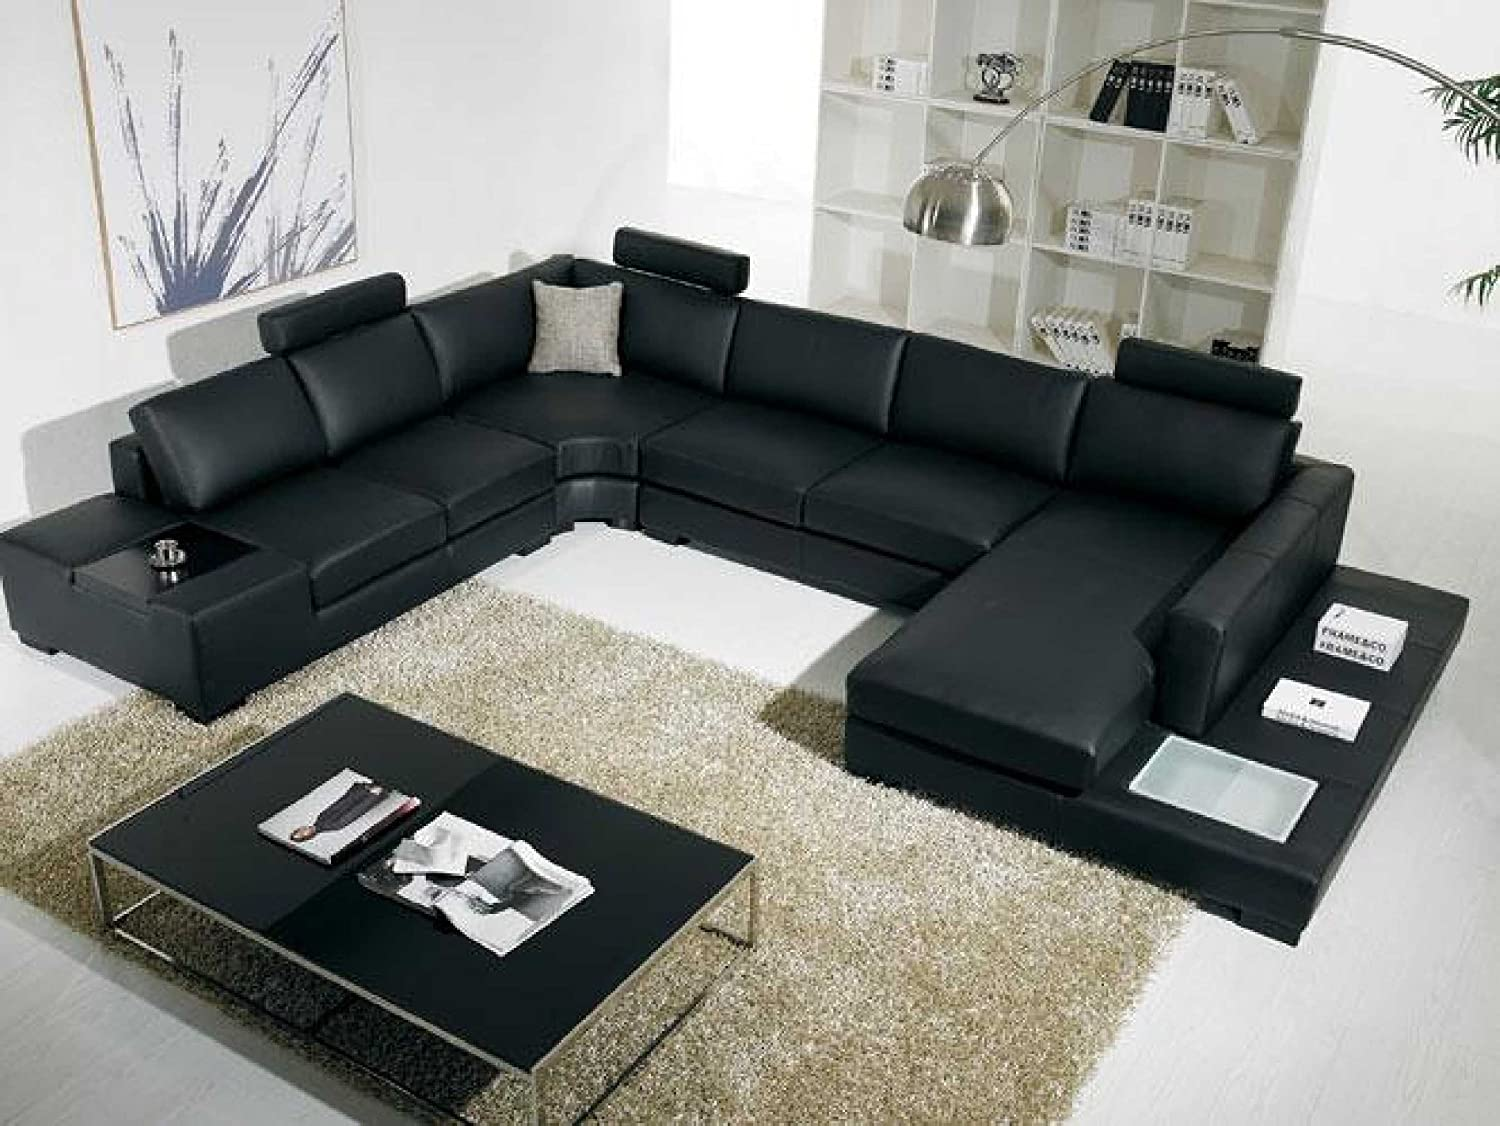 Cheap Sectional Sofas Online - 50+ Modern Styles to Browse ...